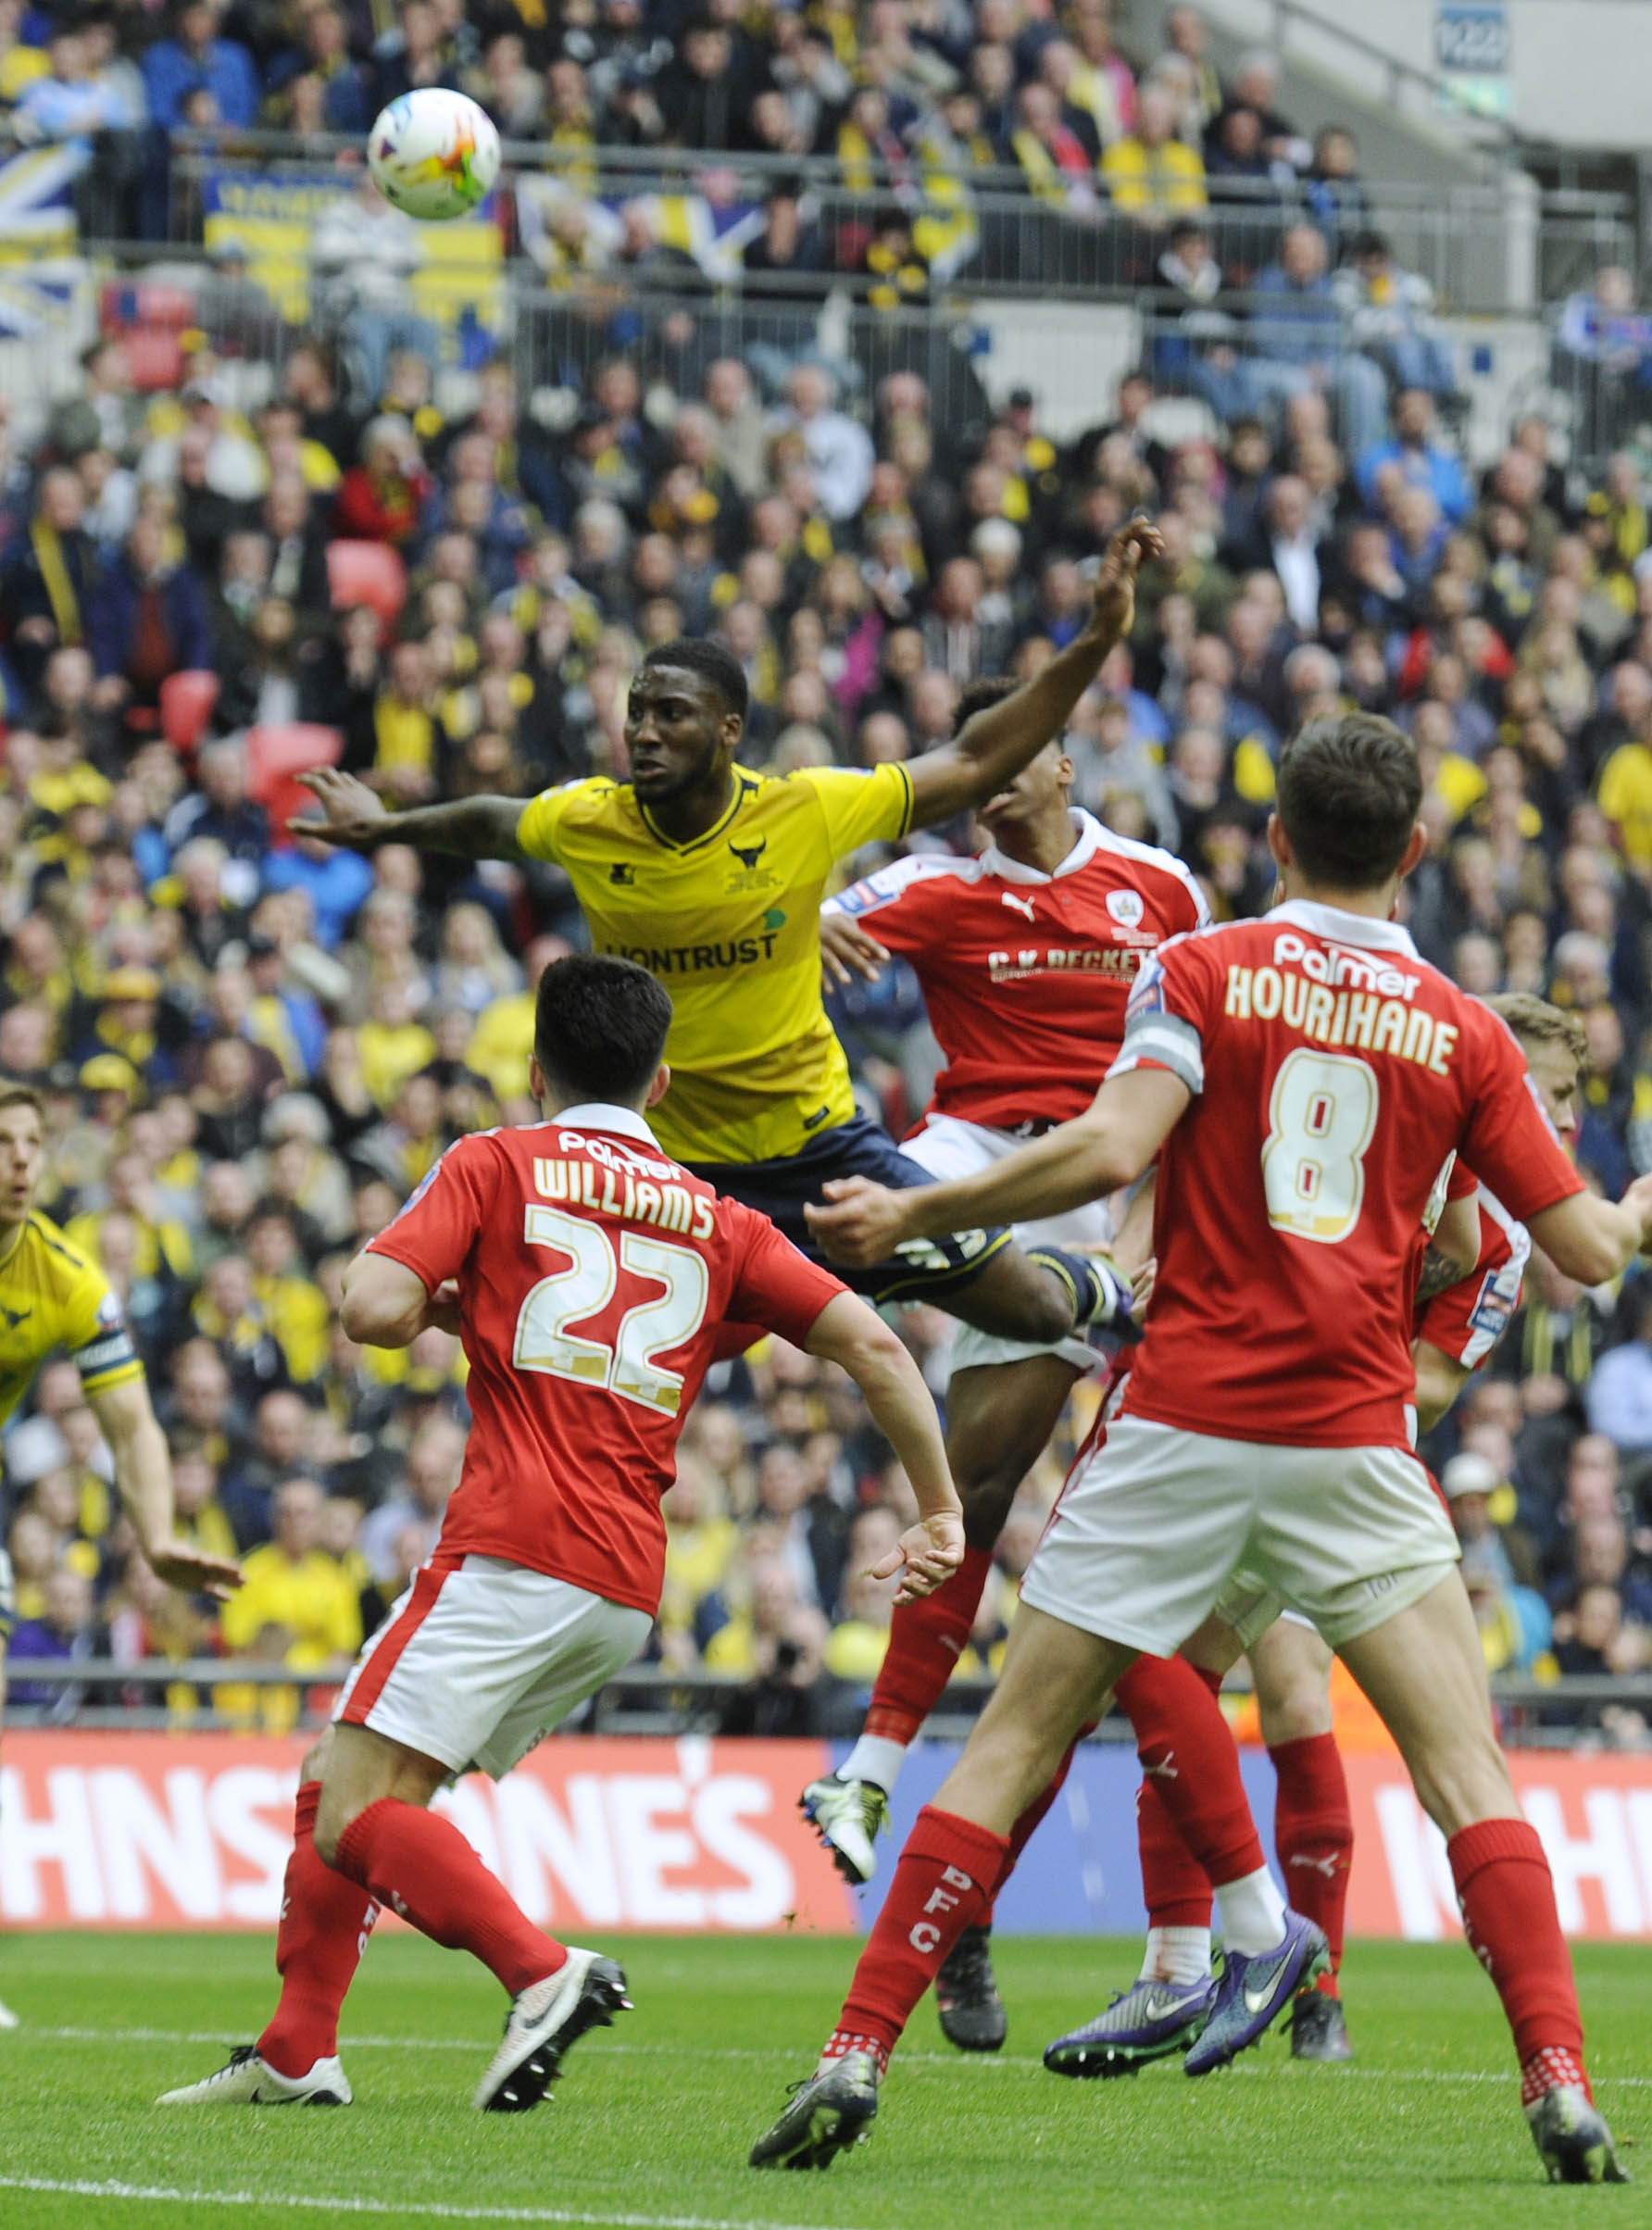 Chey Dunkley climbs above three Barnsley players during Oxford United's Johnstone's Paint Trophy final defeat Picture: David Fleming